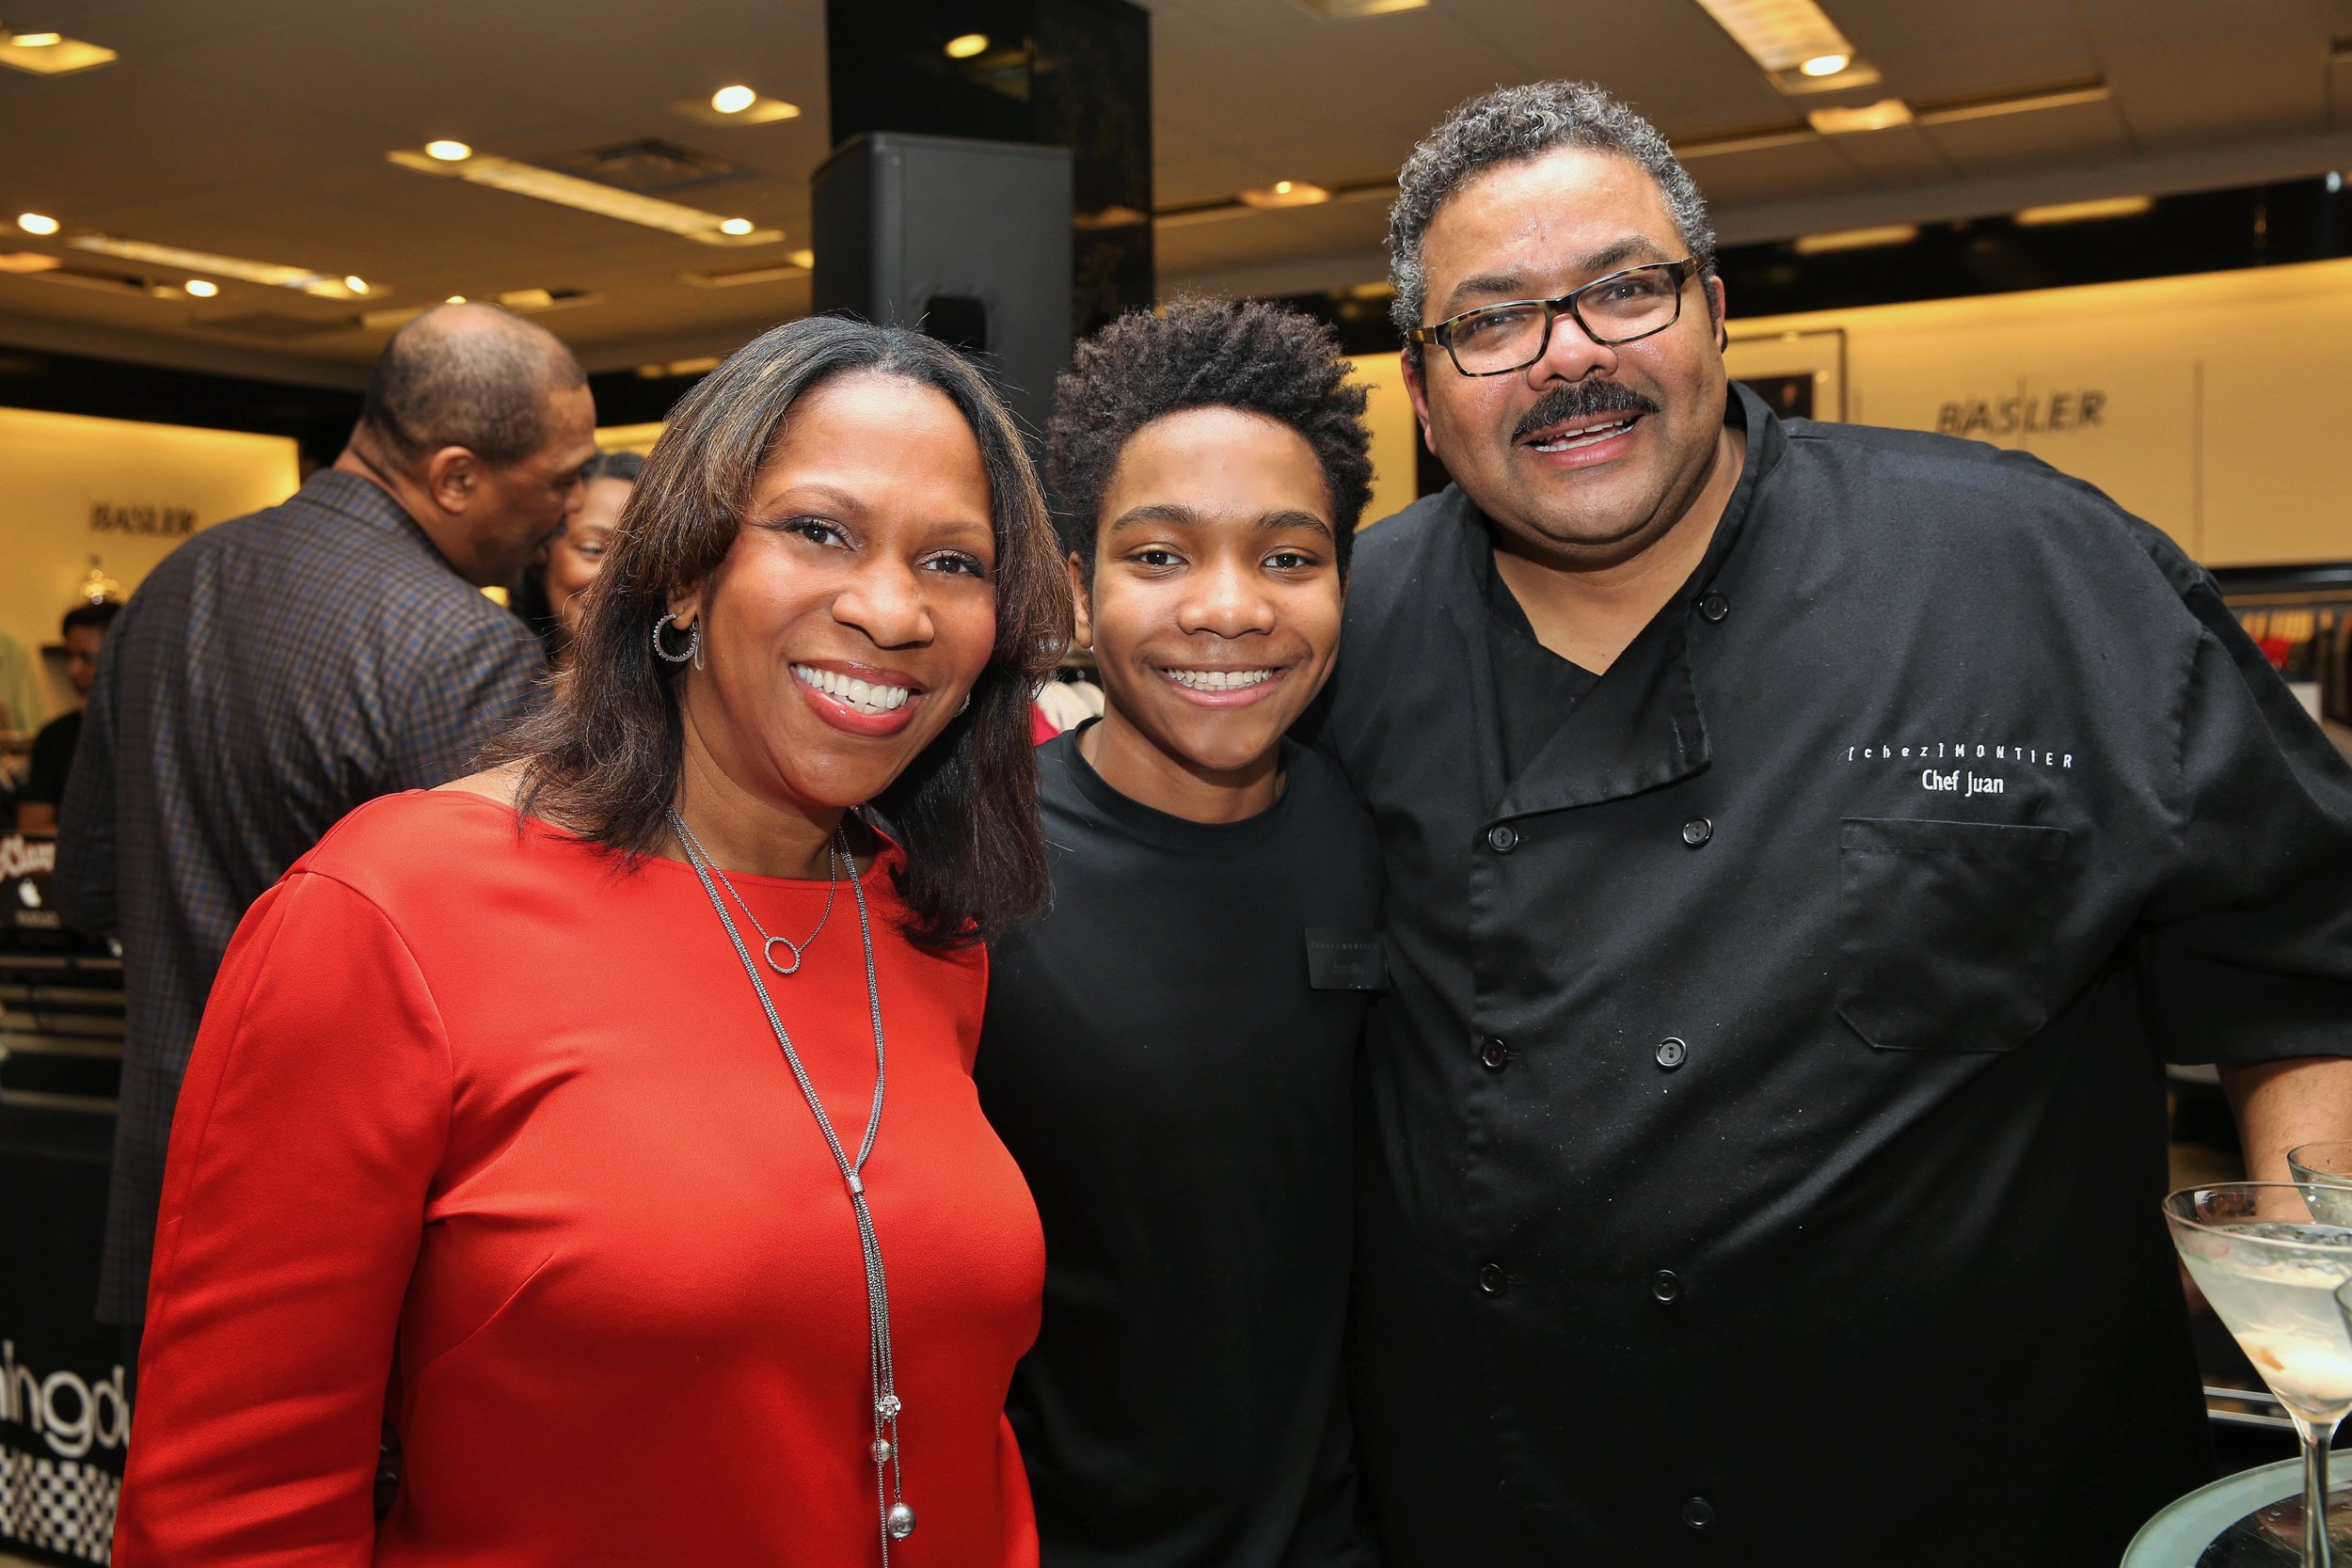 Chef Juan with Wife & Partner Judith and Son Austin